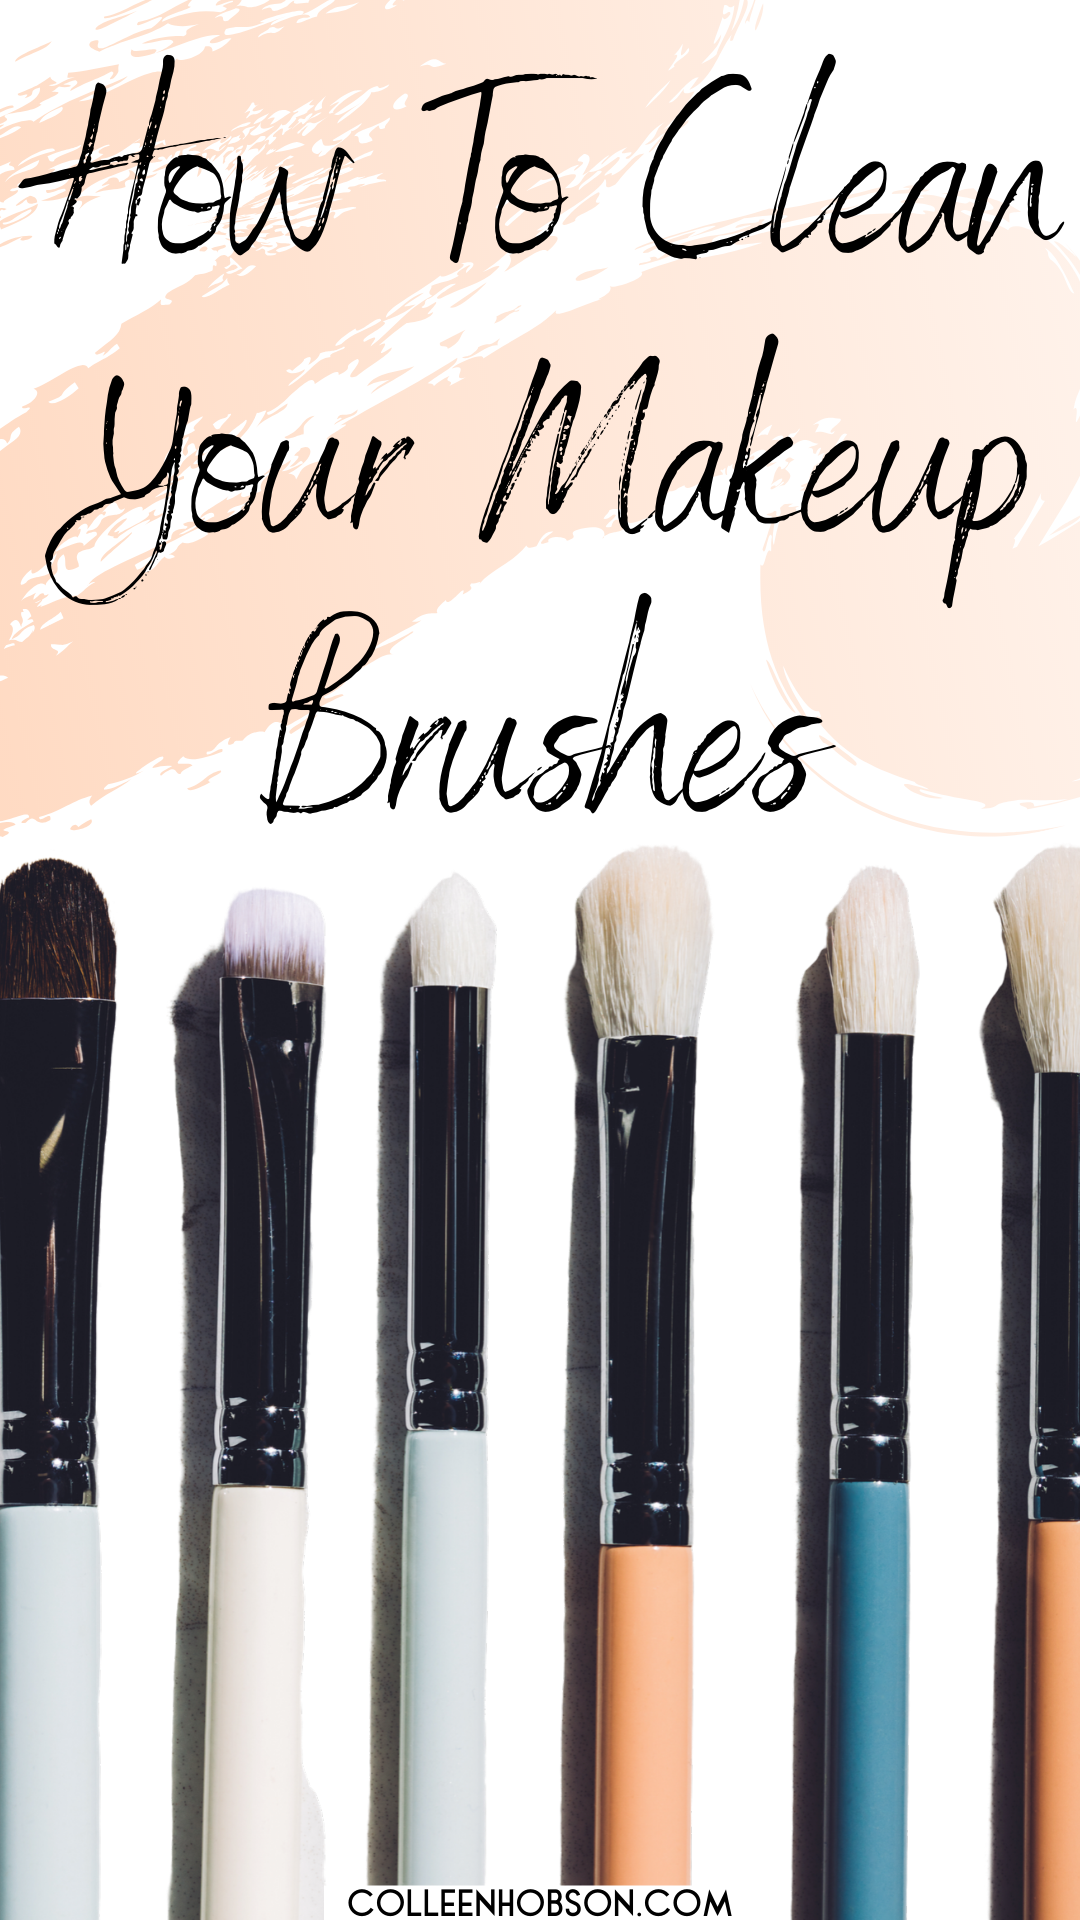 How To Clean Your Makeup Brushes With Dish Soap Colleen